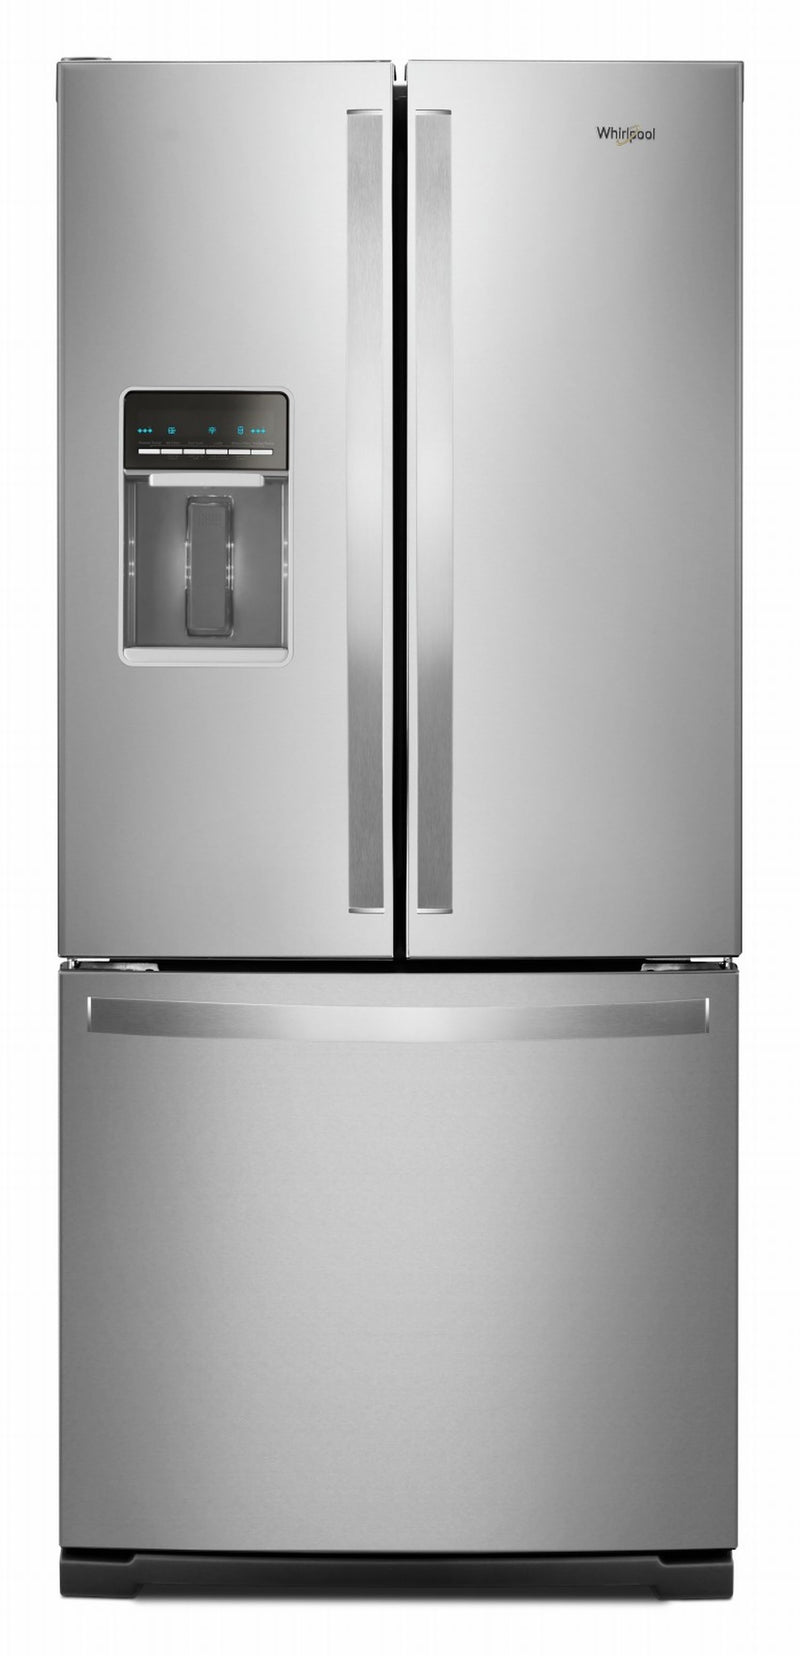 Whirlpool Fingerprint Resistant Stainless Steel Finish French Door Refrigerator (20 Cu. Ft.) - WRF560SEHZ